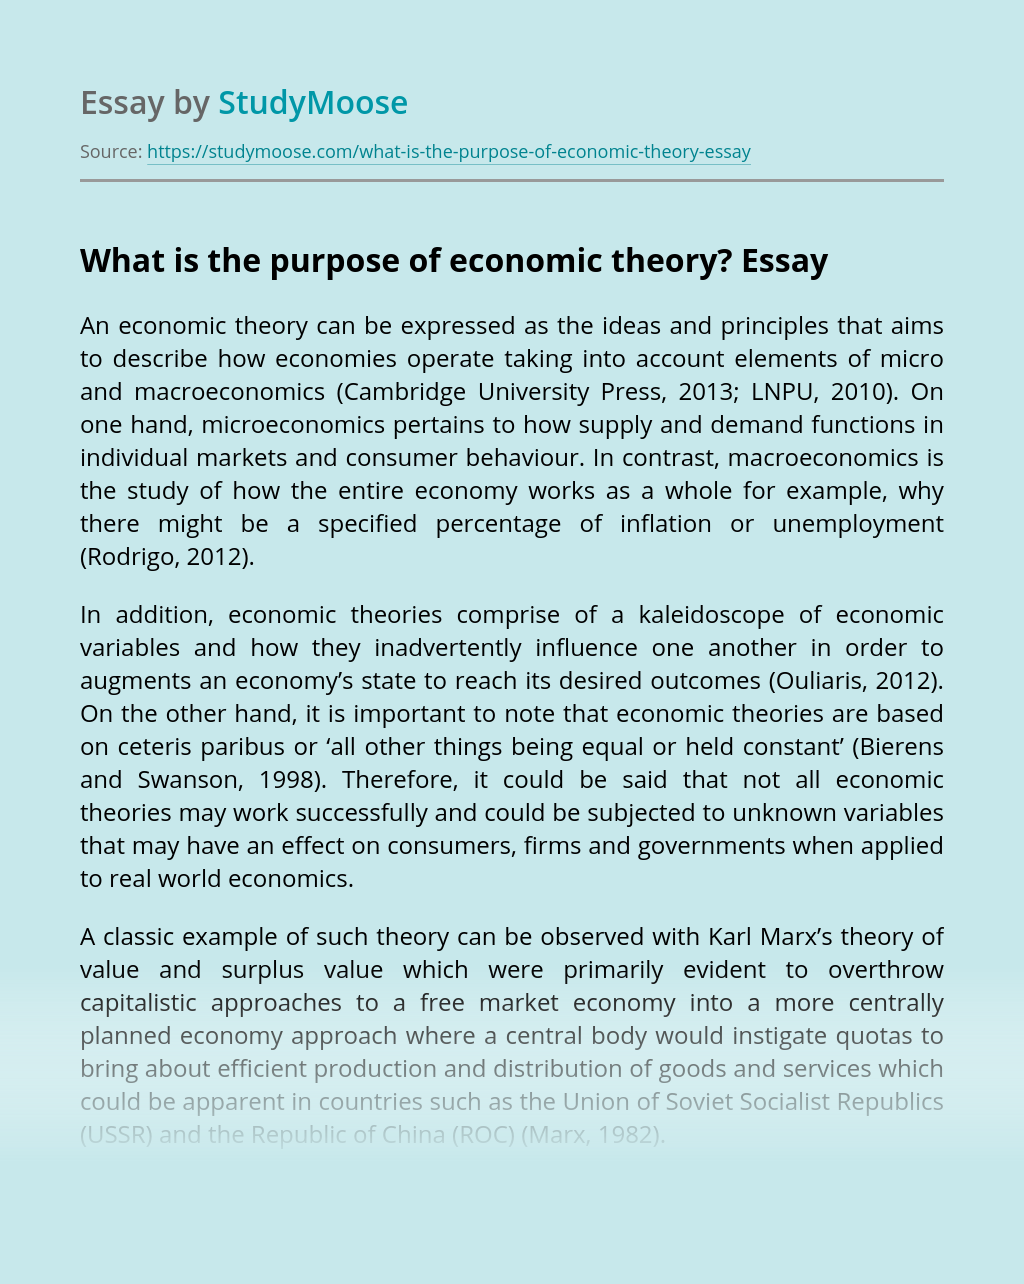 What is the purpose of economic theory?